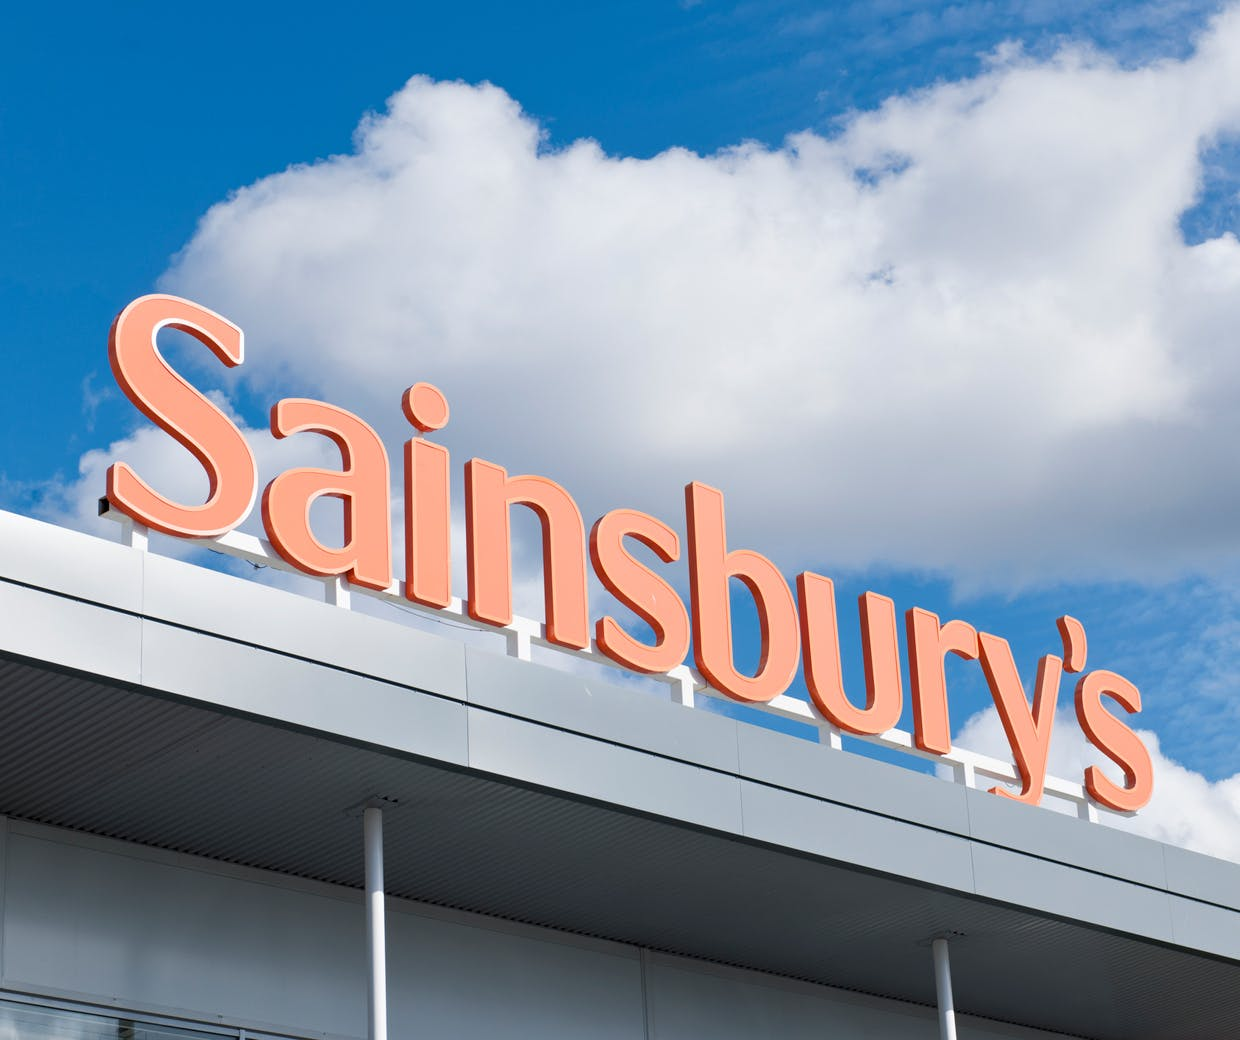 Uk S In Colorado: Sainsbury's And Argos Merge Marketing Teams With New CMO